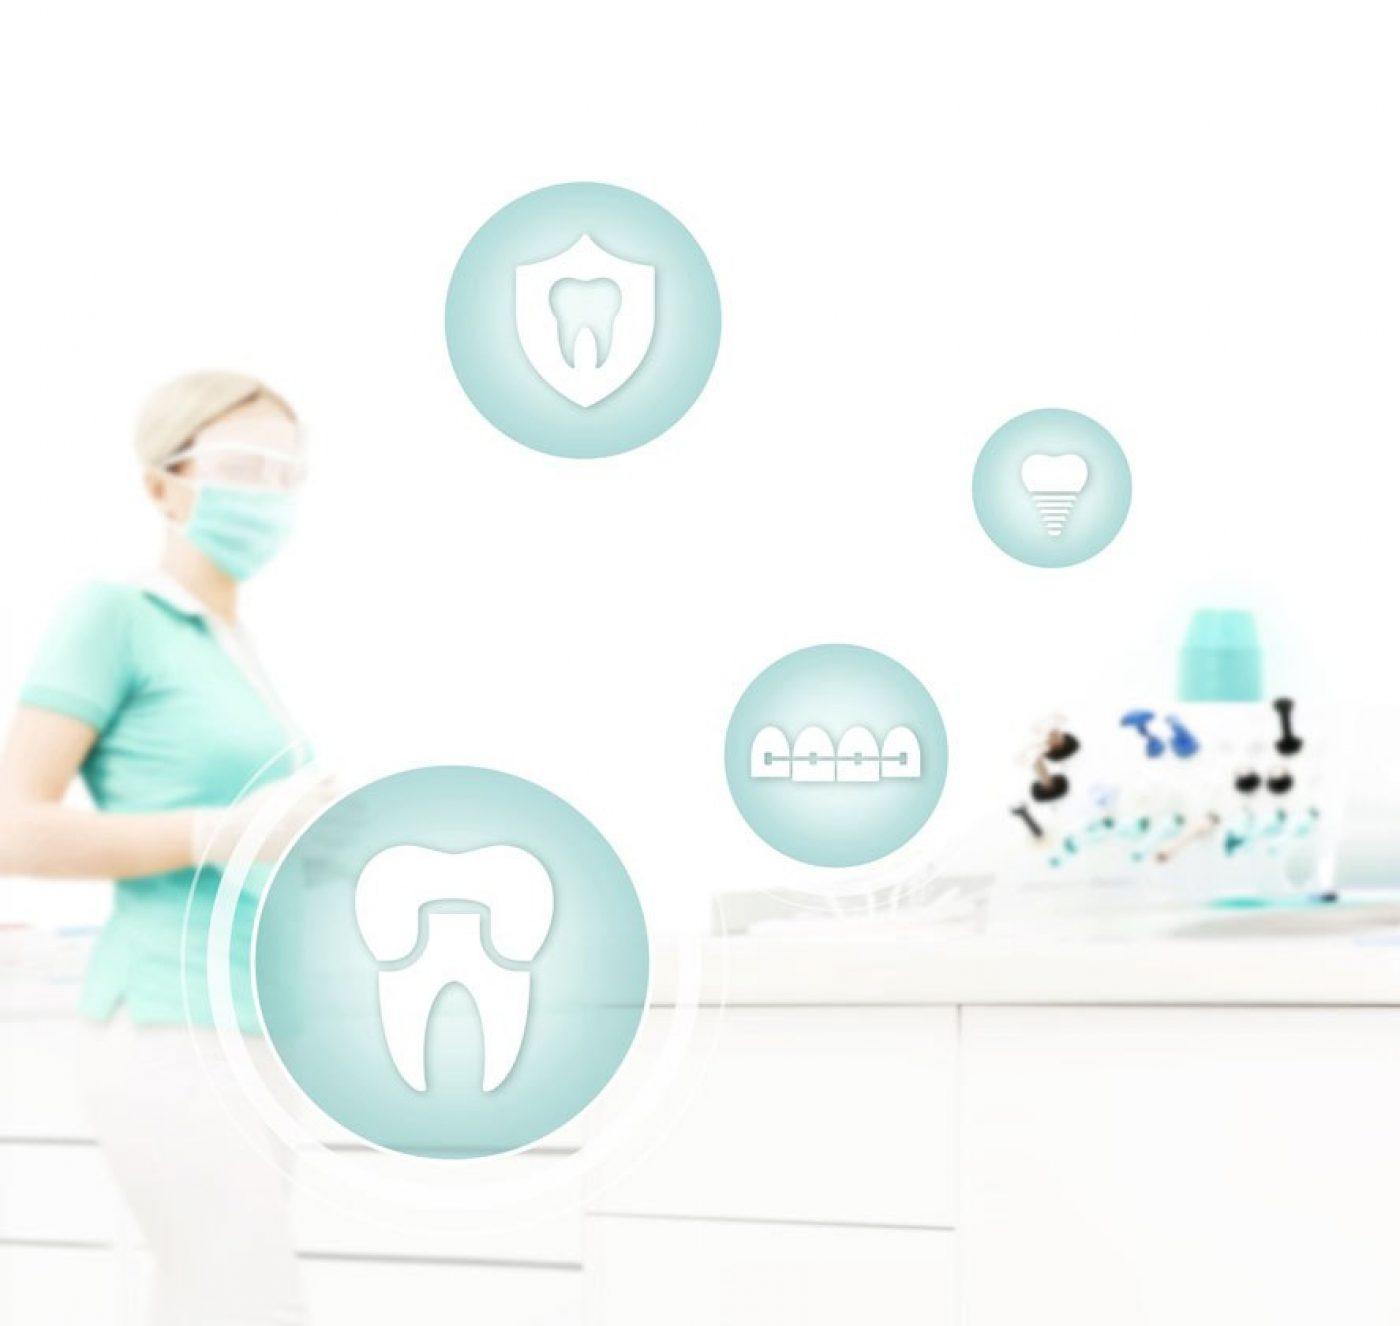 Smiles Advicecare Commondentalconditions